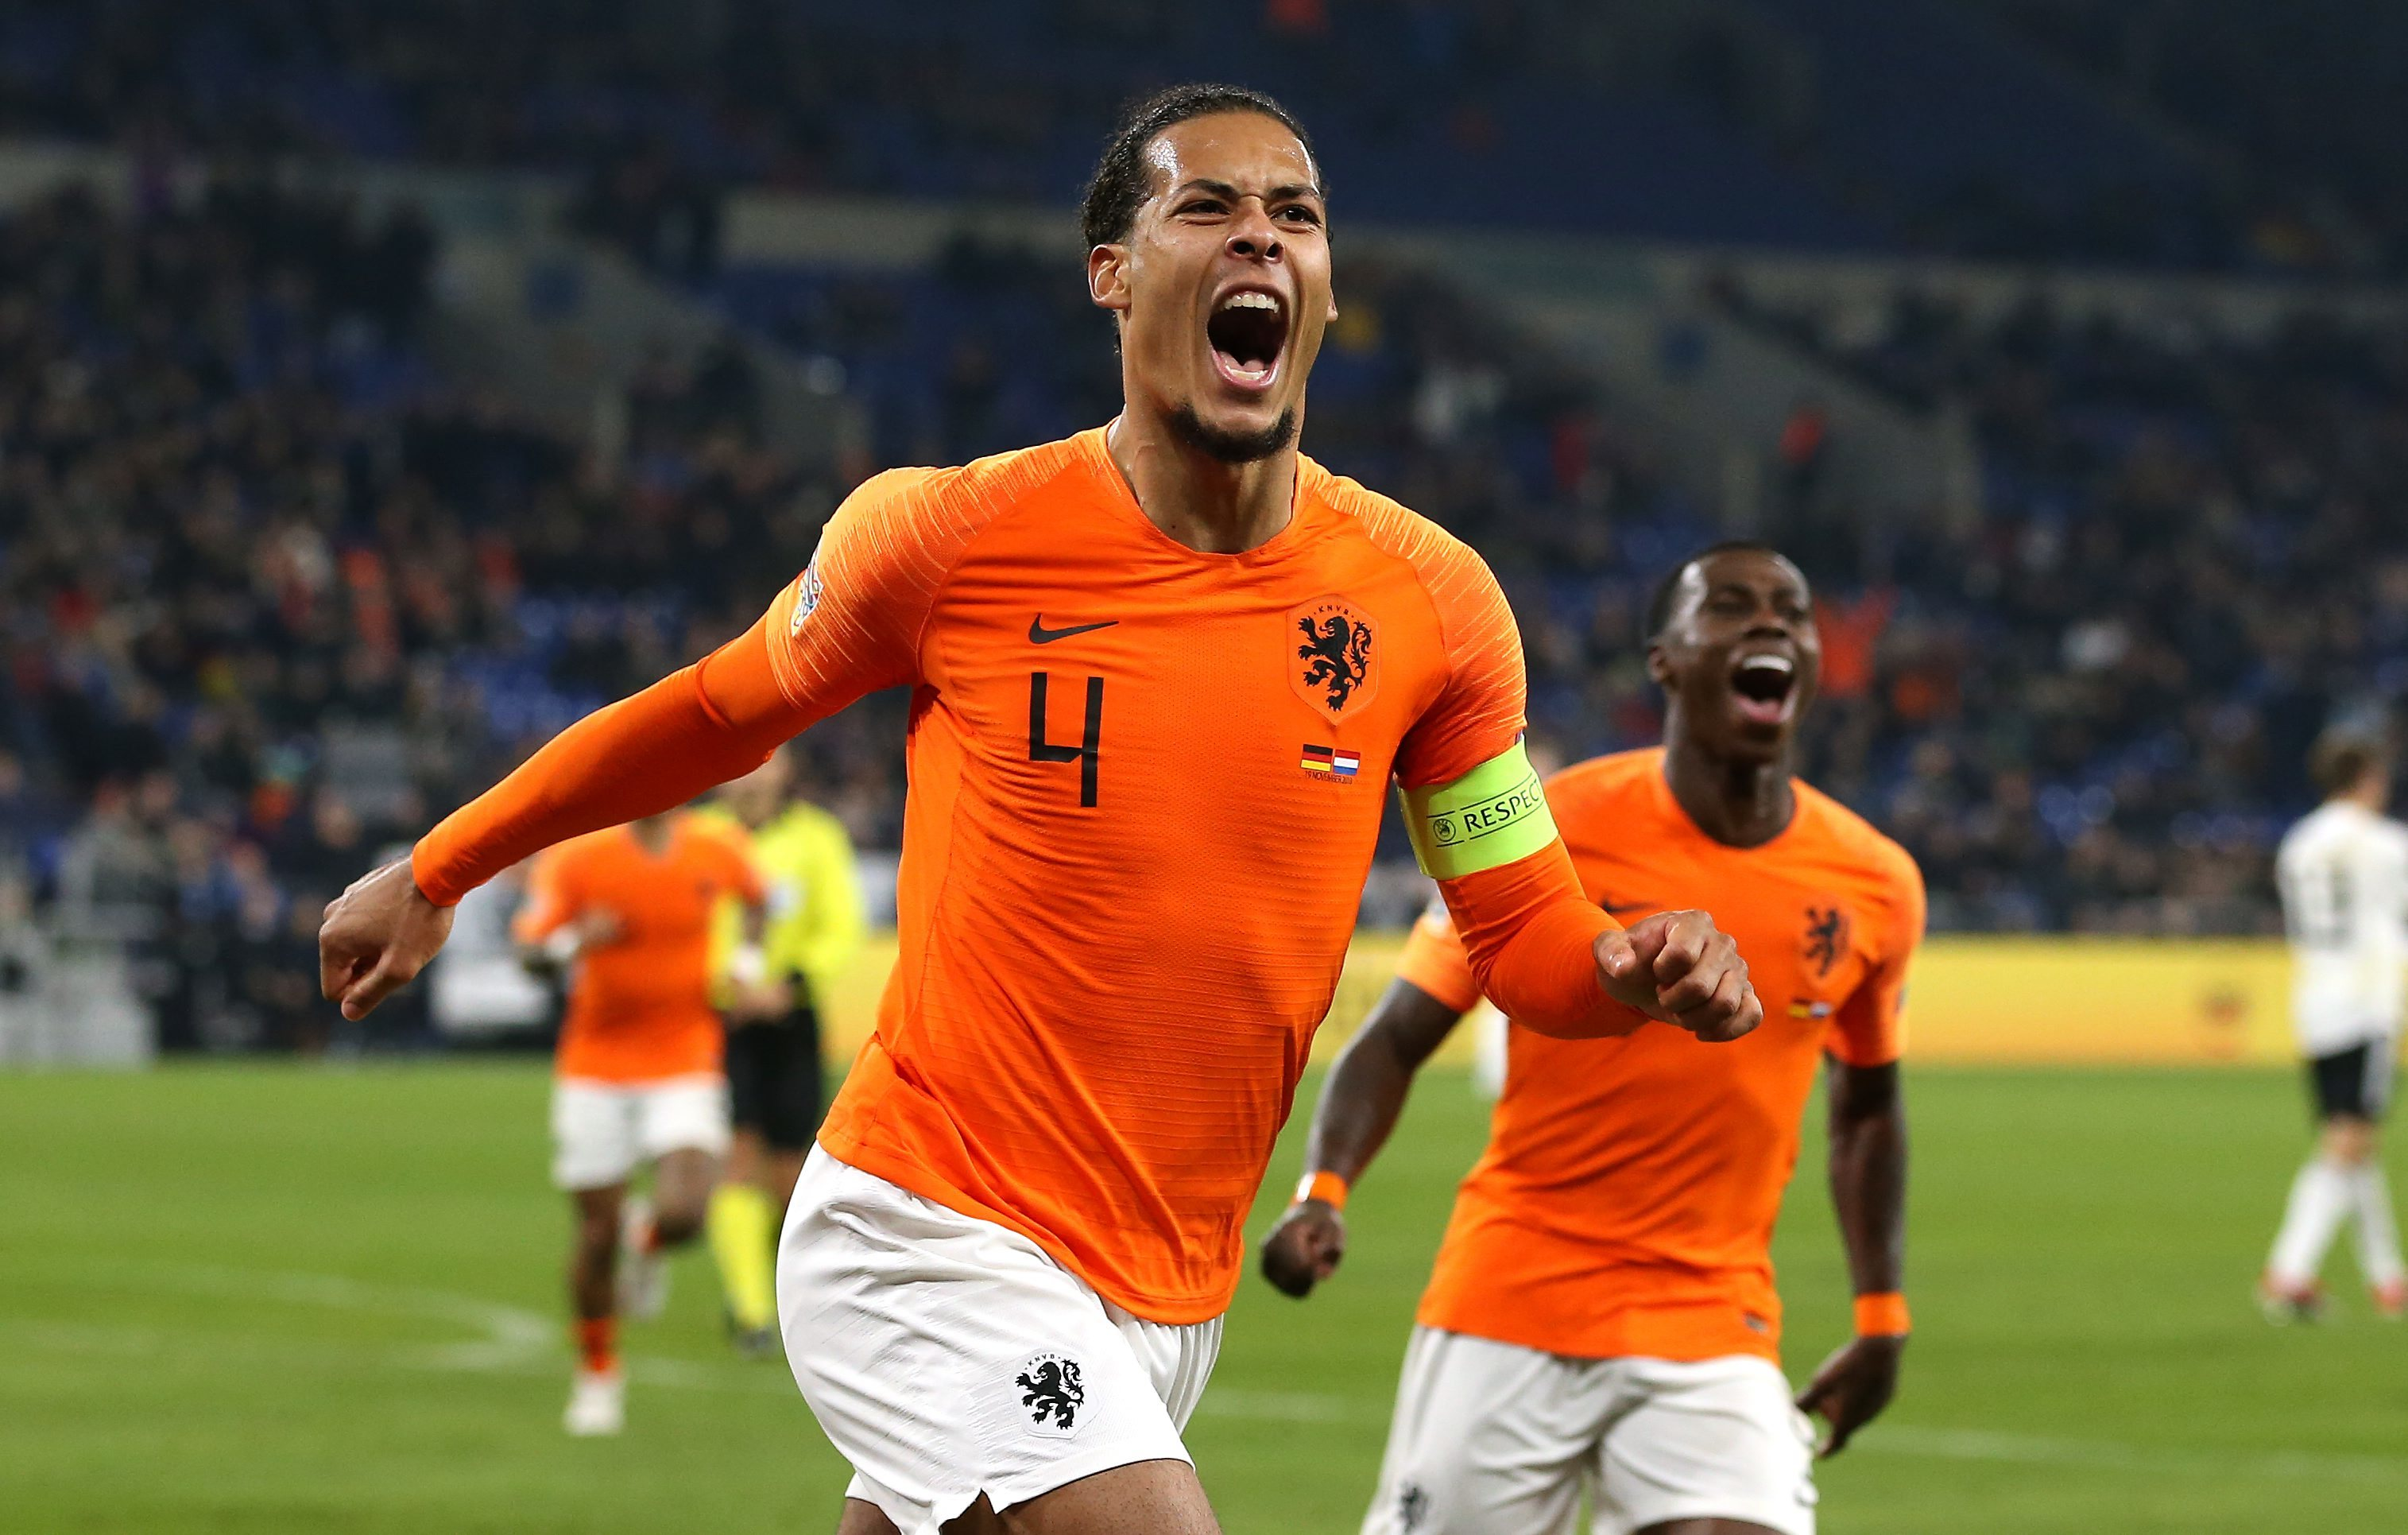 Euro 2020 Qualifier Accumulator: Betting Preview + Tips